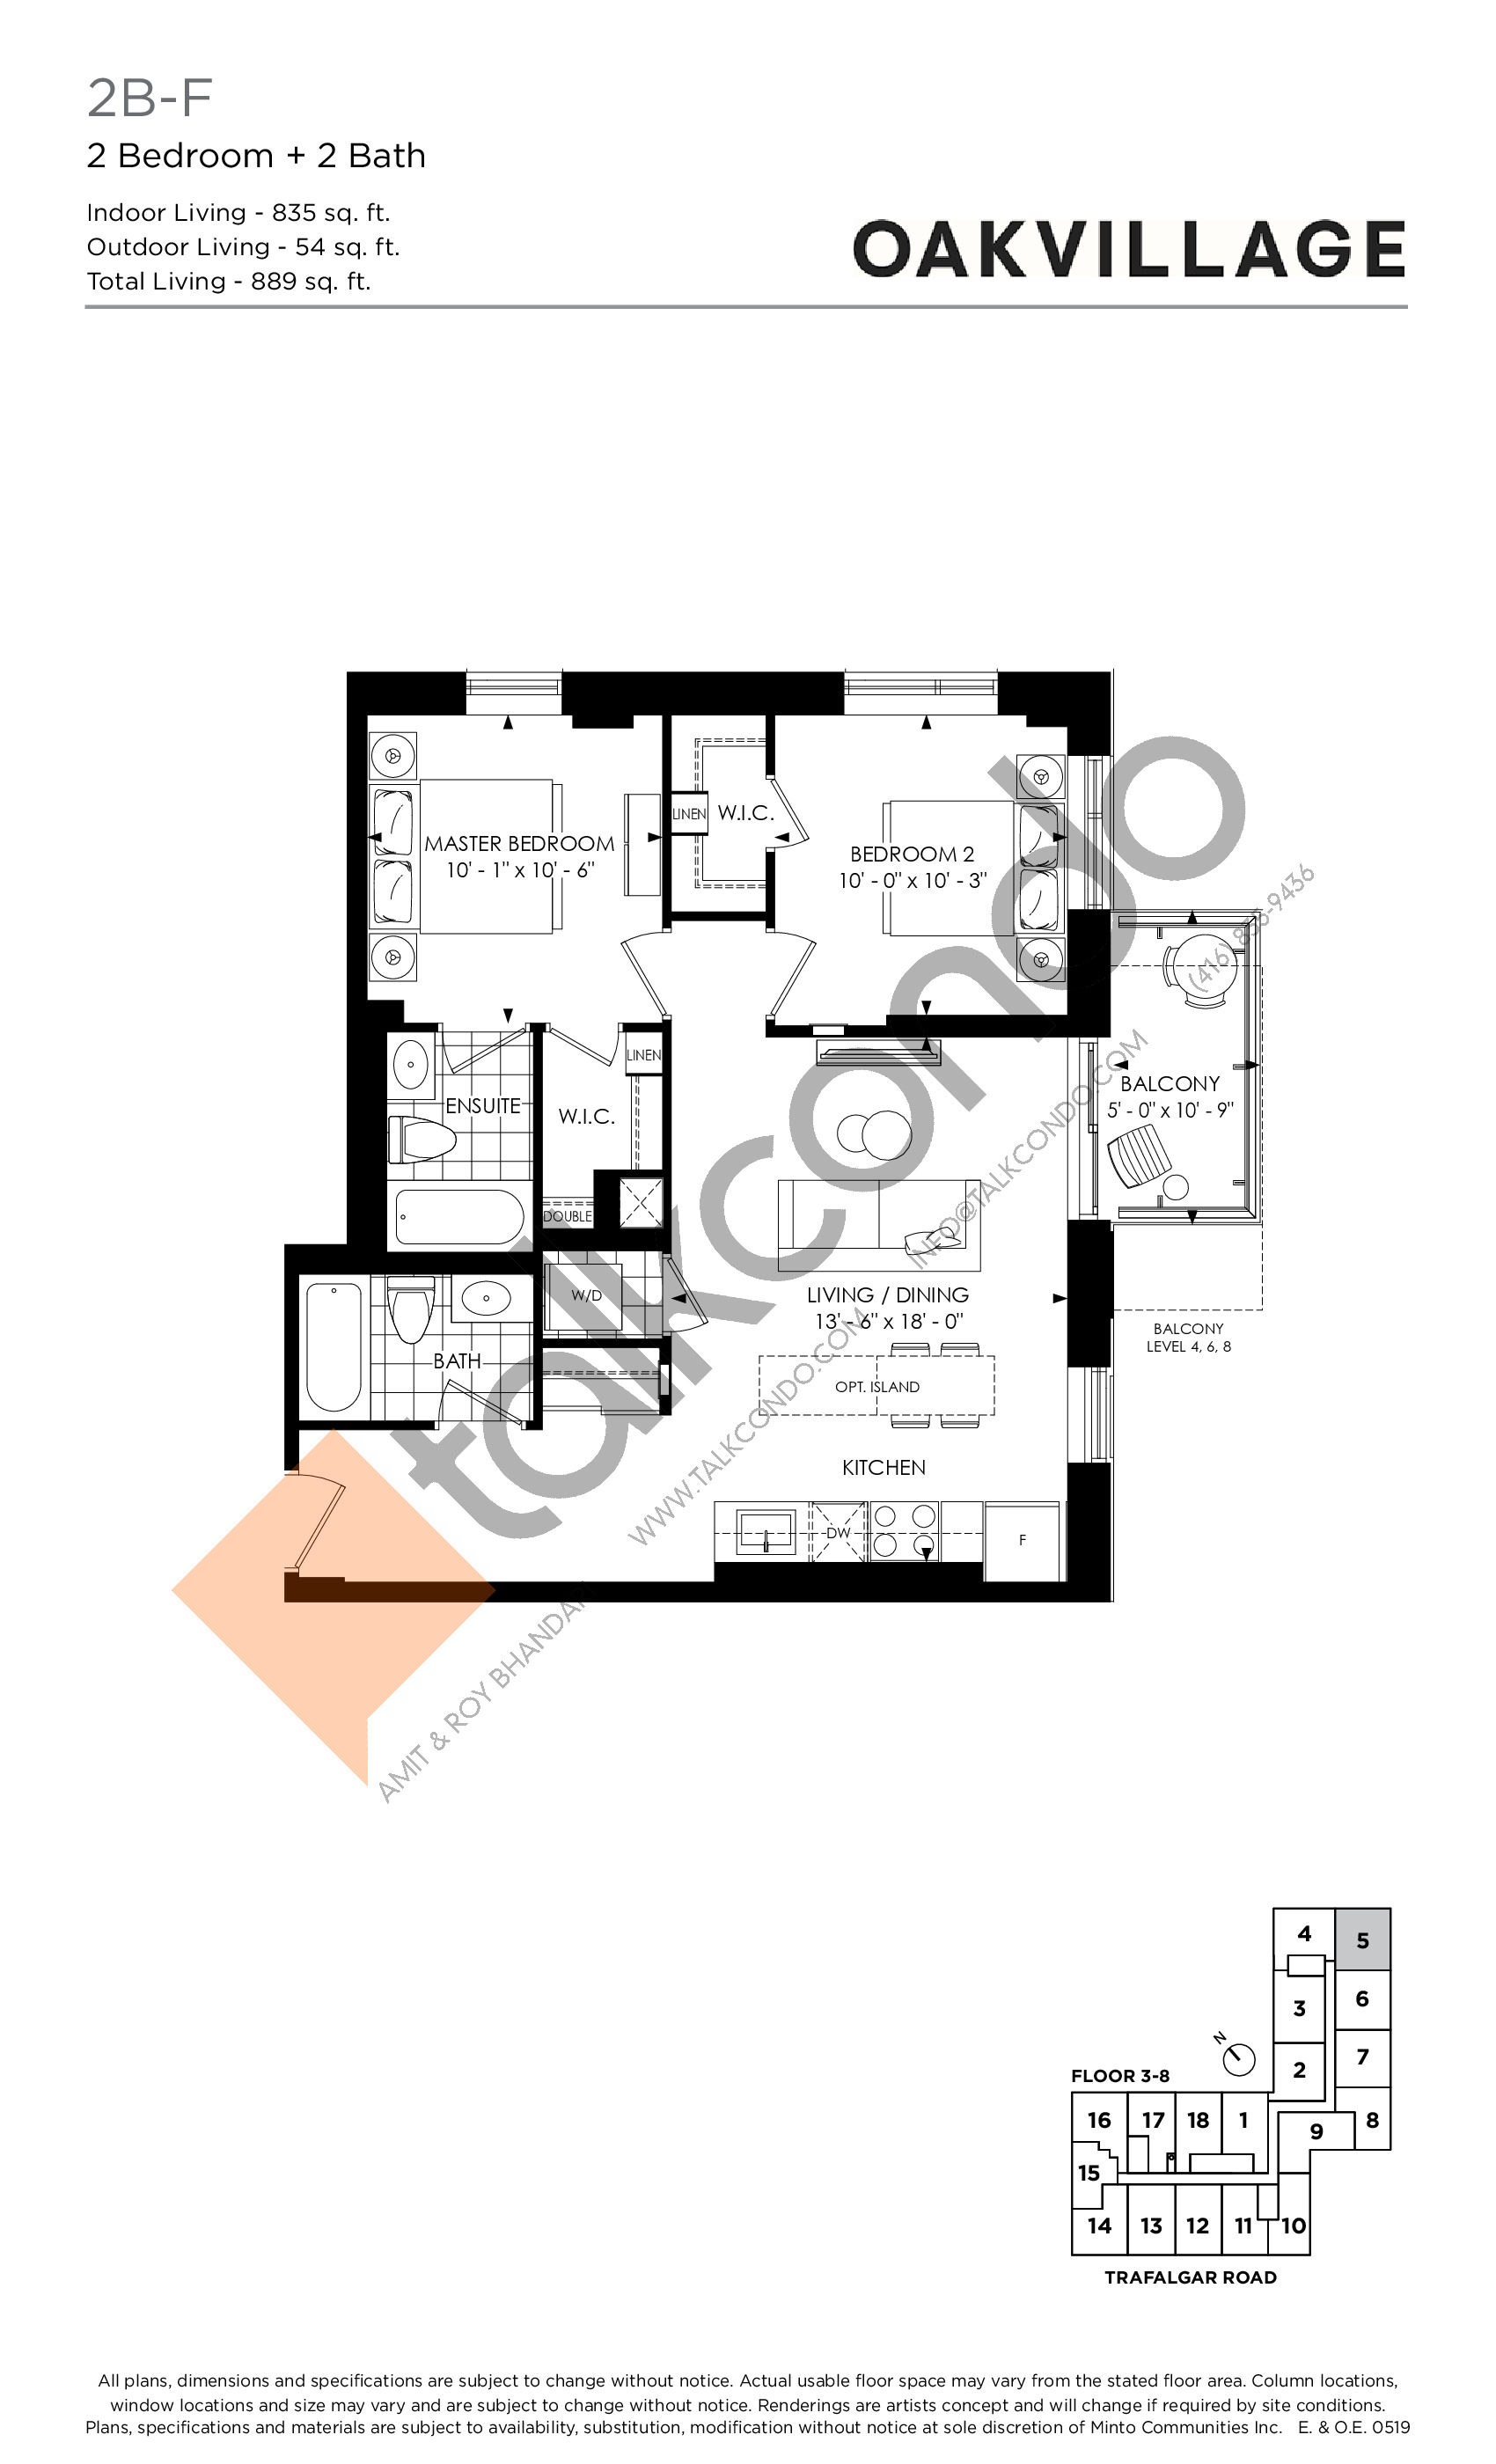 2B-F (Podium) Floor Plan at Oakvillage Phase 2 - 835 sq.ft